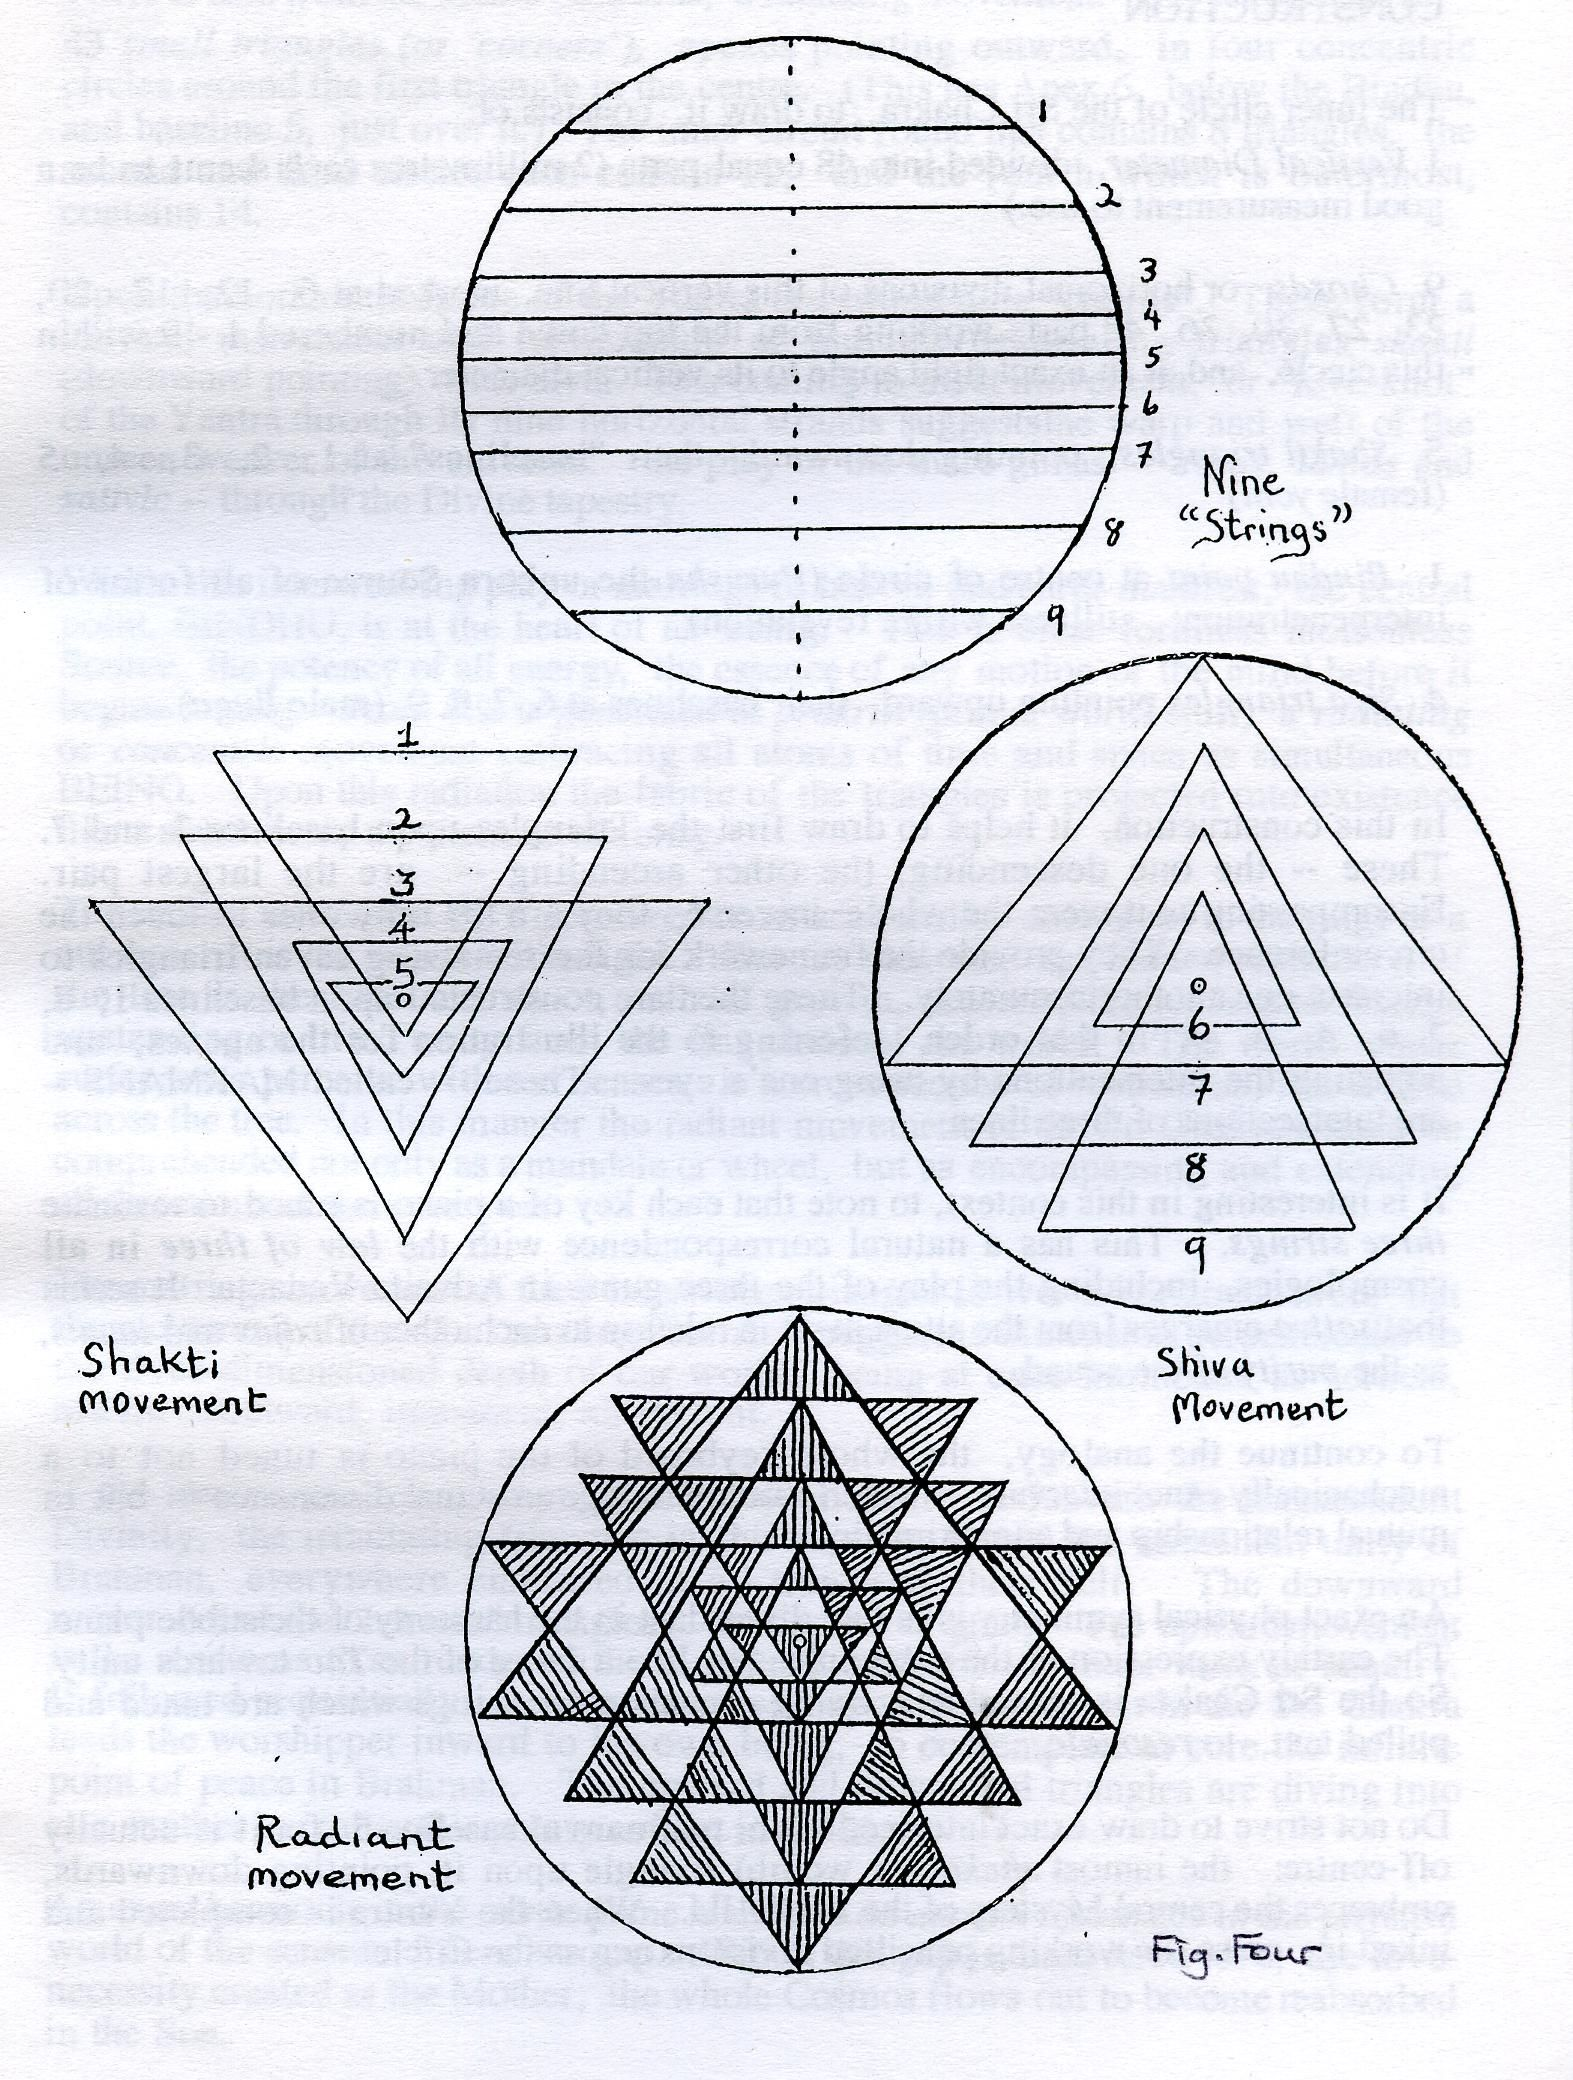 8862de02caca6ef79f684c1fc5aab648 how to draw the sri chakra yantra doodle drawings, sacred